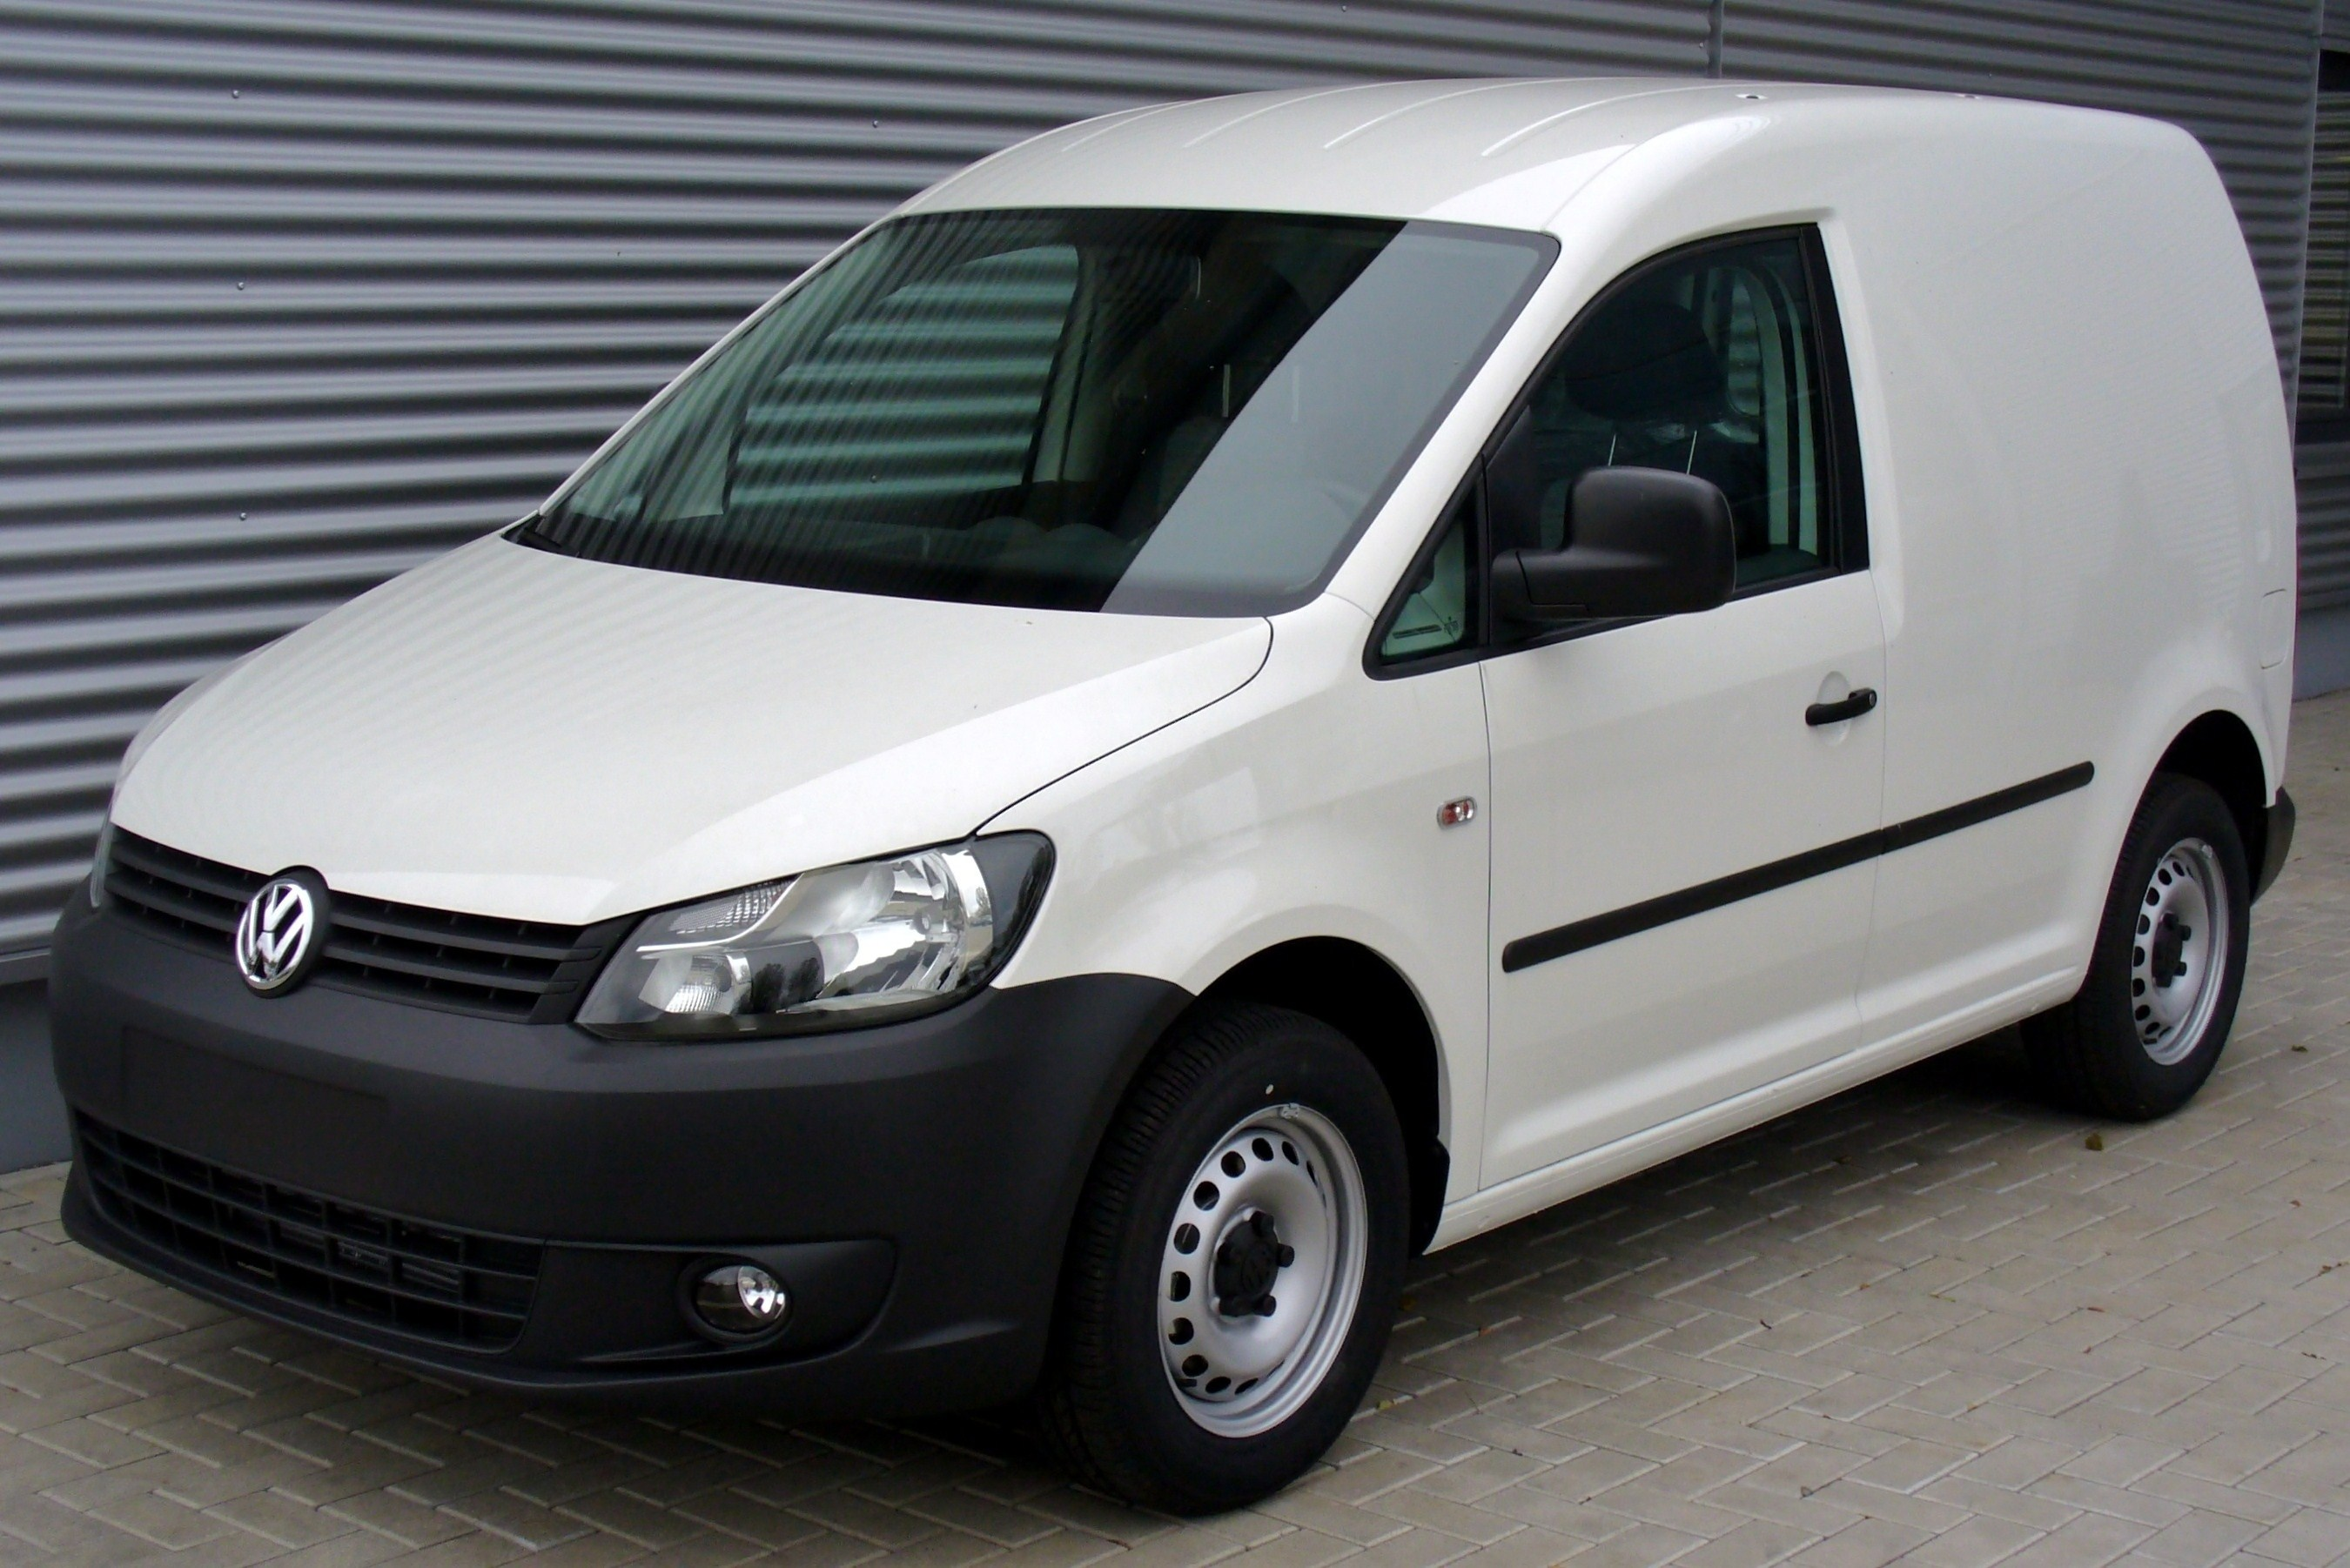 volkswagen caddy 1.6-pic. 1